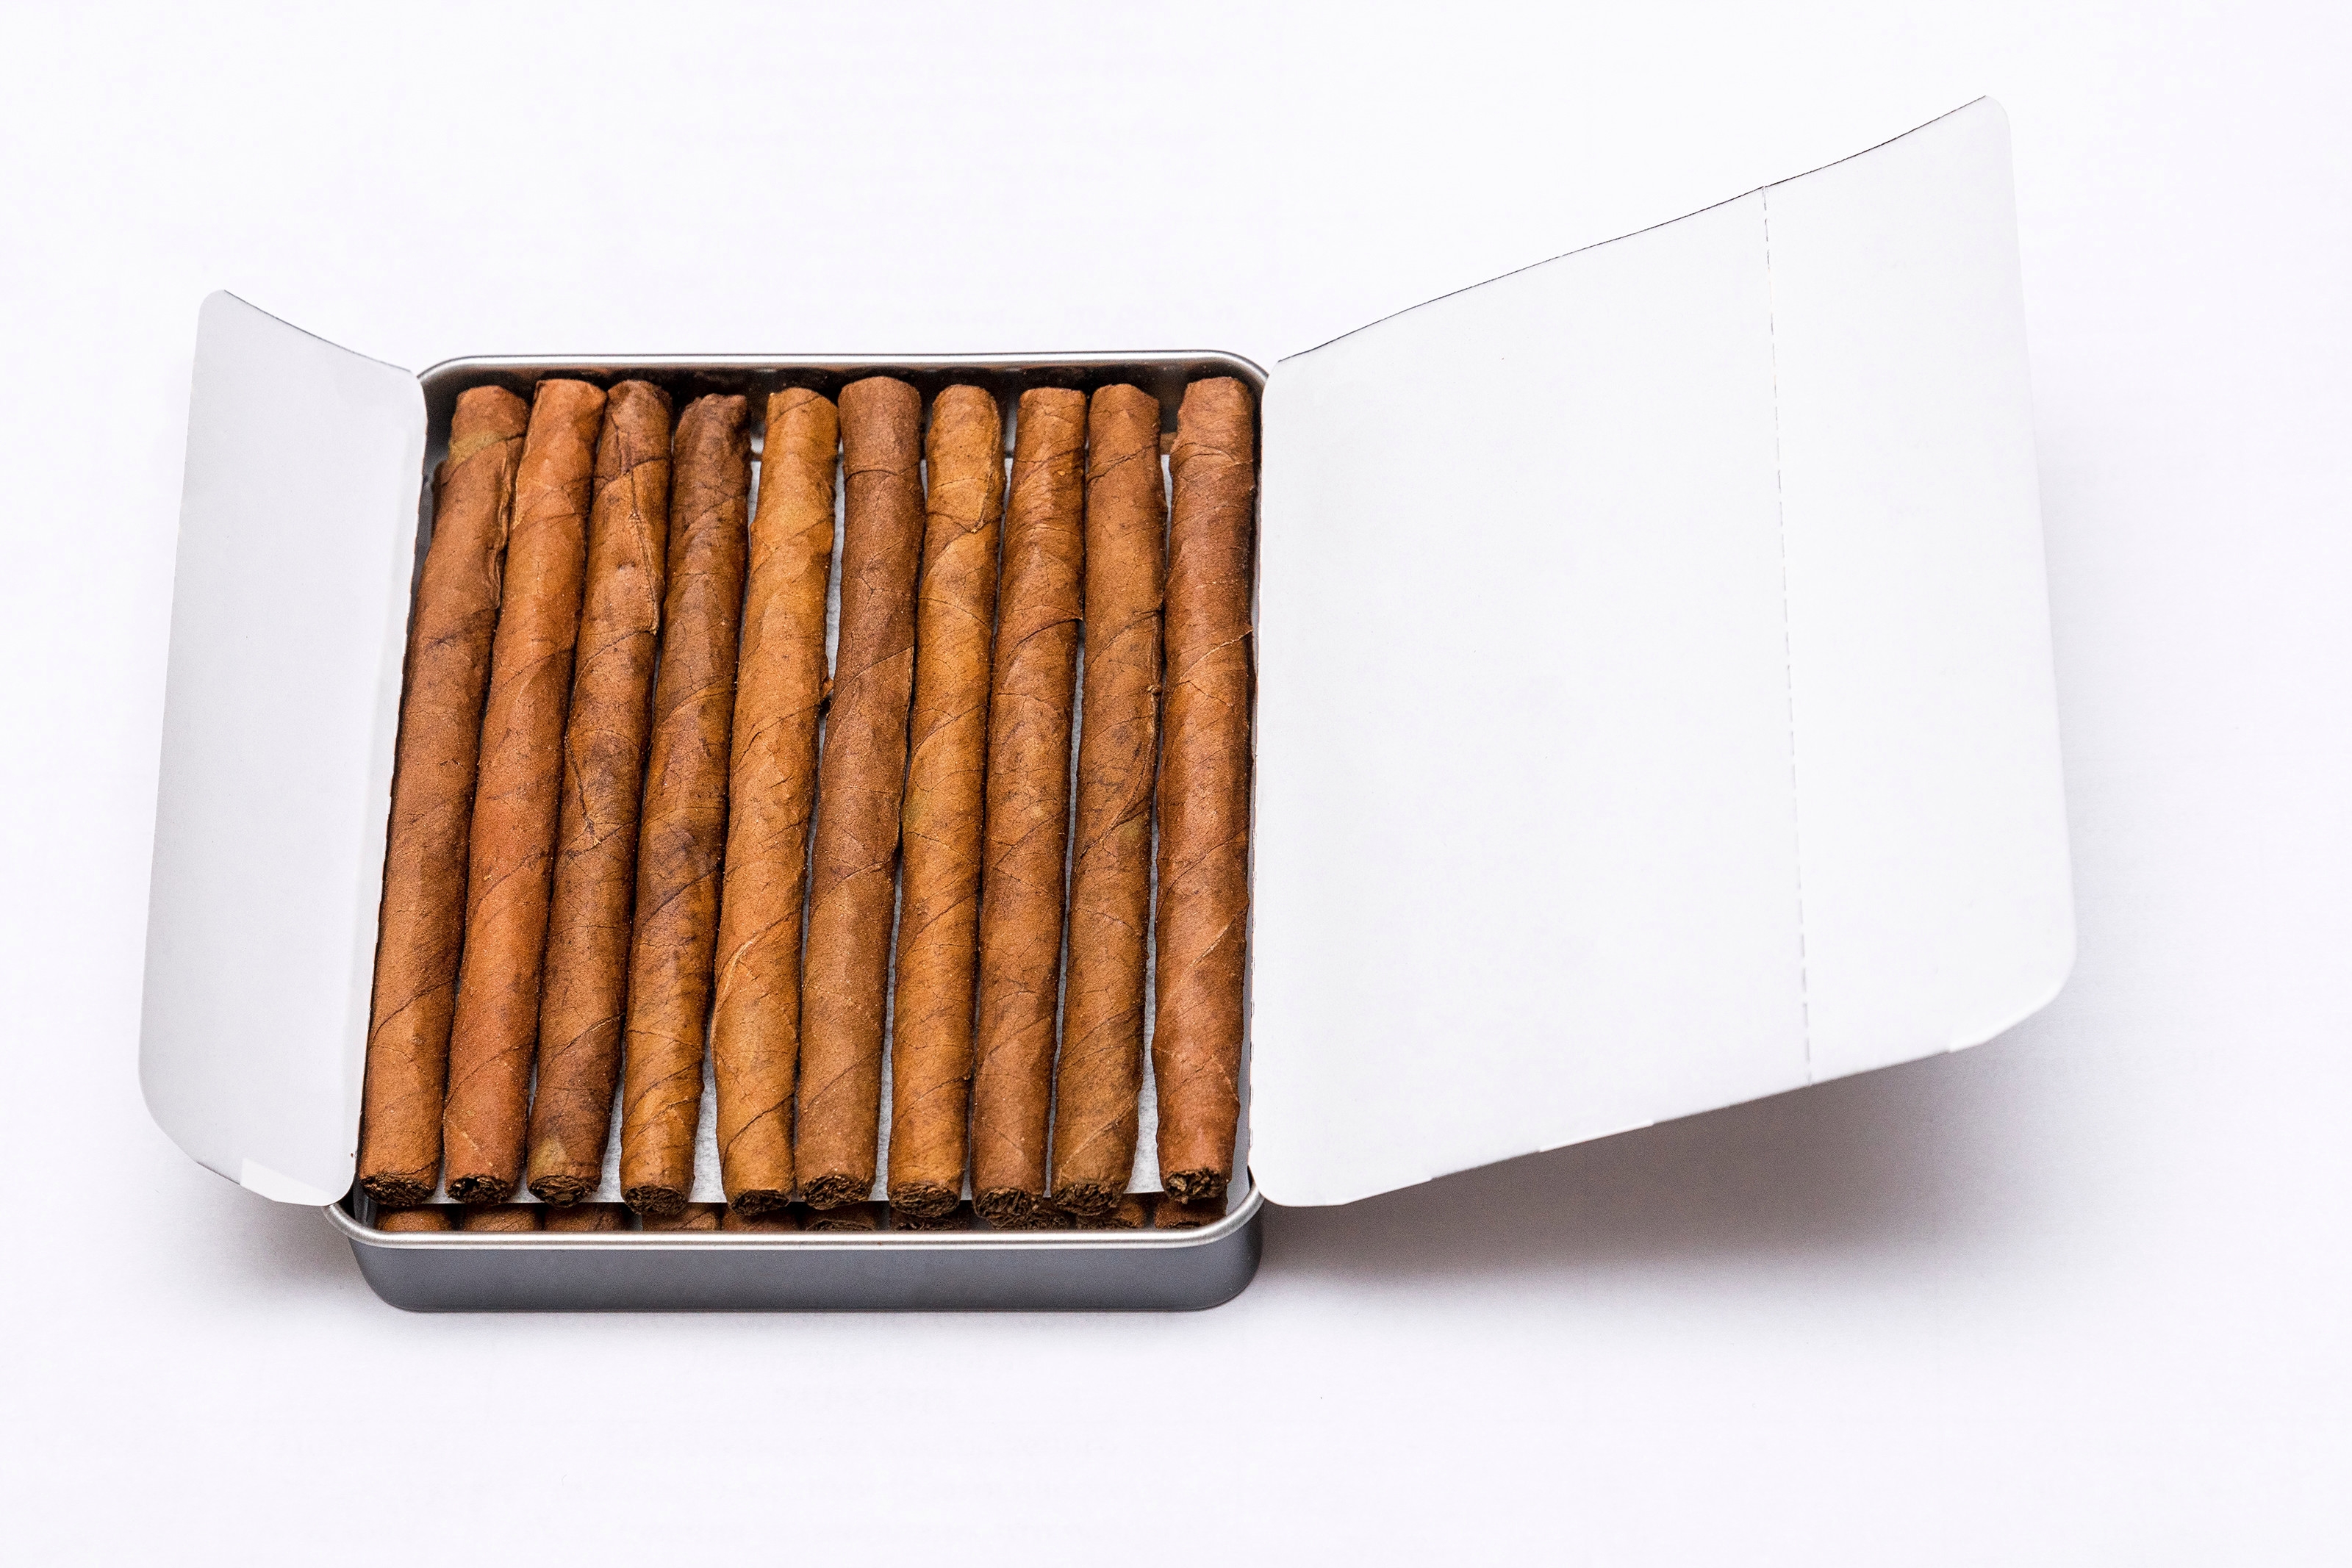 Campaigners have called for the government to ban a new brand of menthol cigarillos, stock image